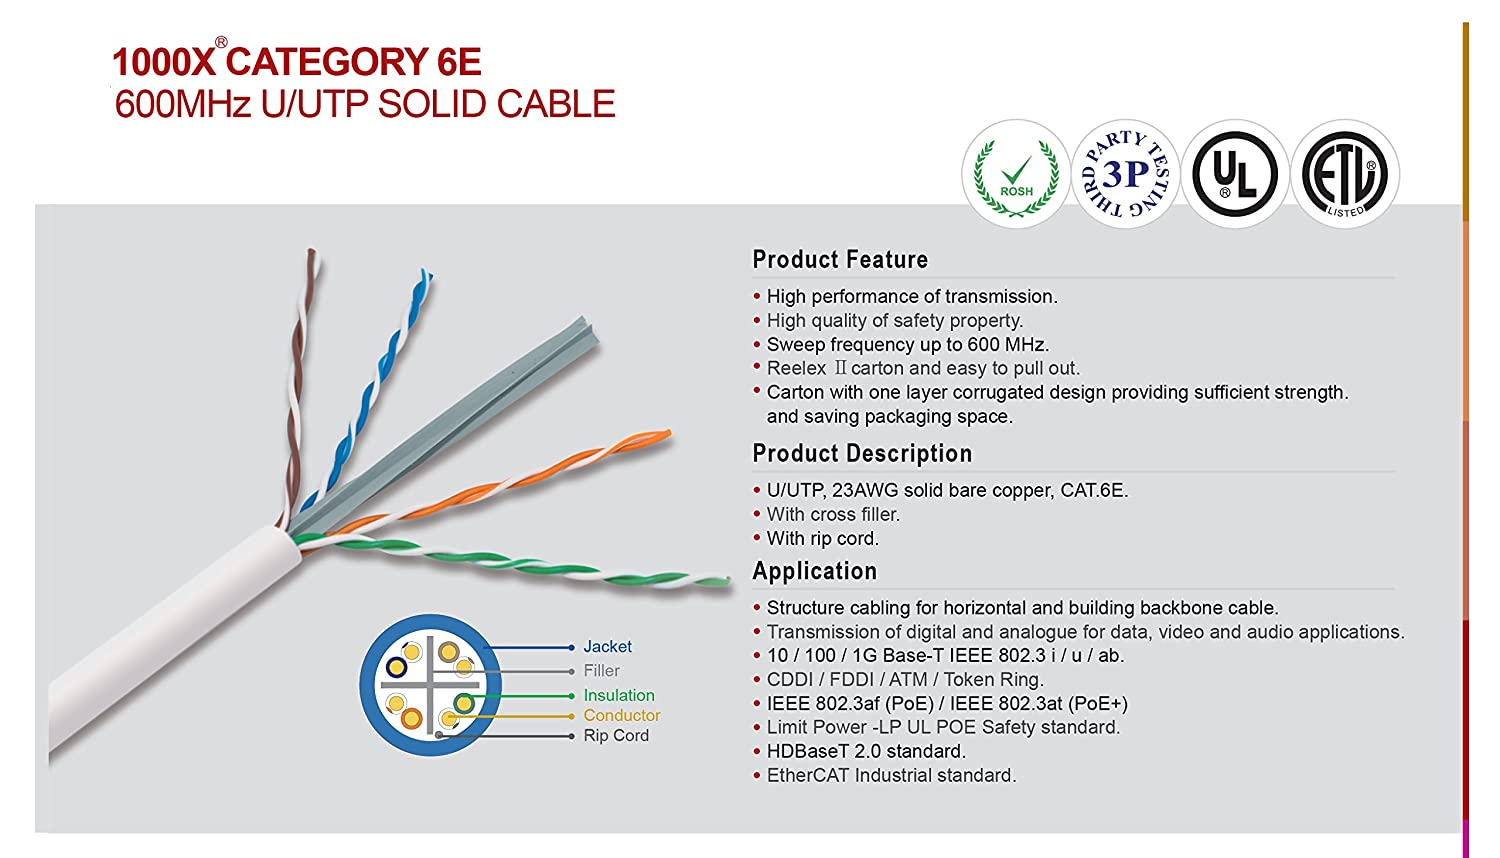 Amazon infinity cable cat6e plenum 600mhz cmp 23awg utp solid amazon infinity cable cat6e plenum 600mhz cmp 23awg utp solid 100 pure copper 1000 feet easy to pull reelex ii box green computers accessories pooptronica